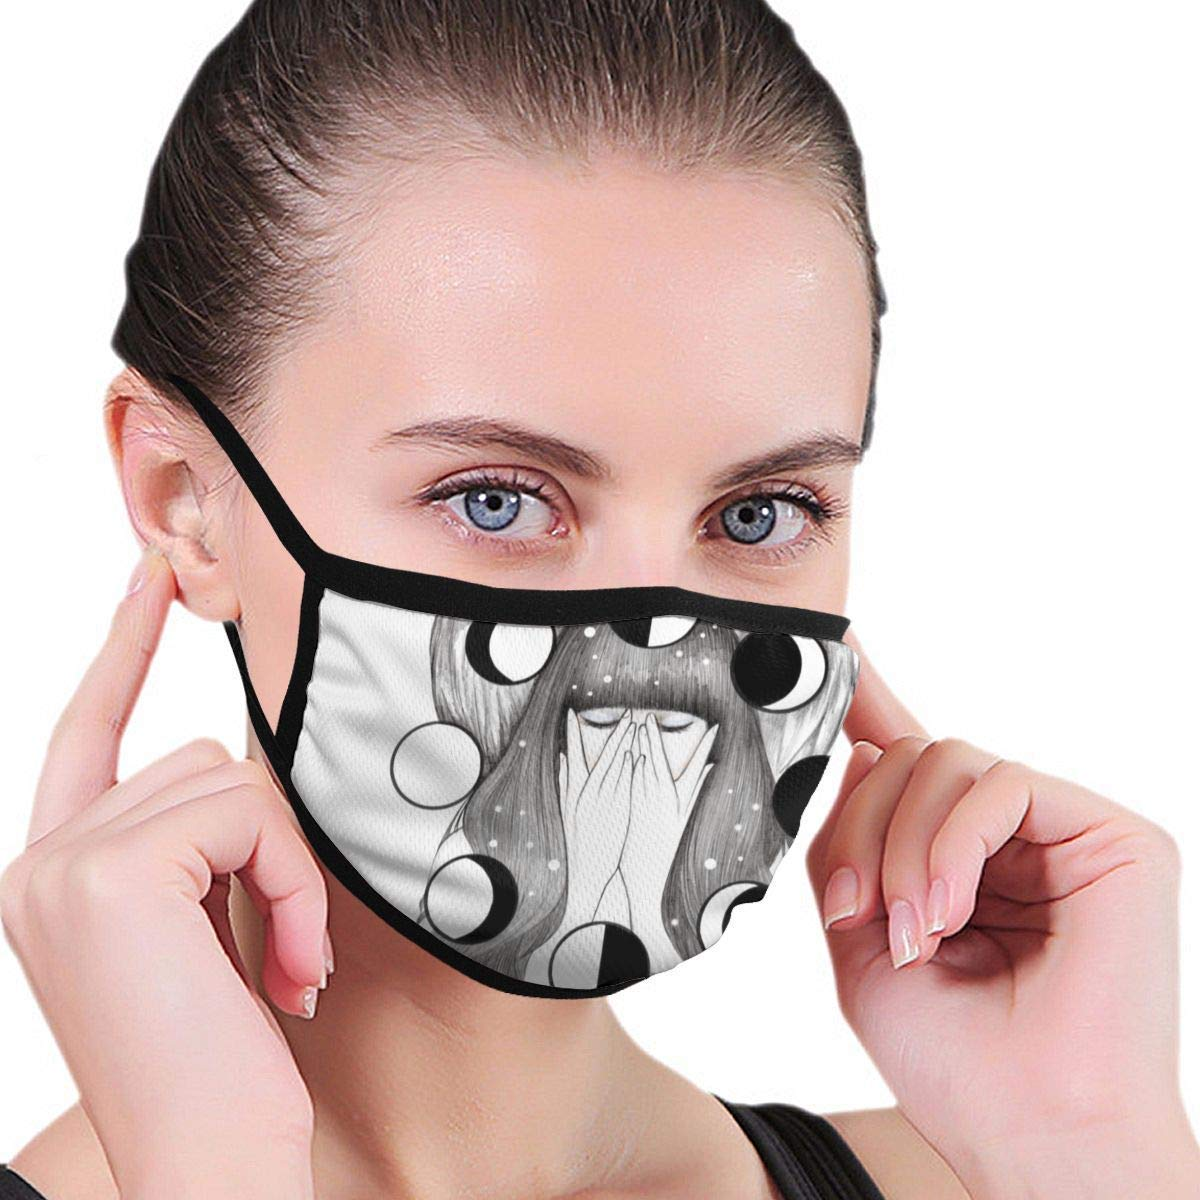 Bdwuhs Mascarillas Bucales Moon Spells Anti Pollution Dust Mask Washable and Reusable Polyester Face Mouth Mask Protection from Flu Germ Pollen Allergy Respirator Mask